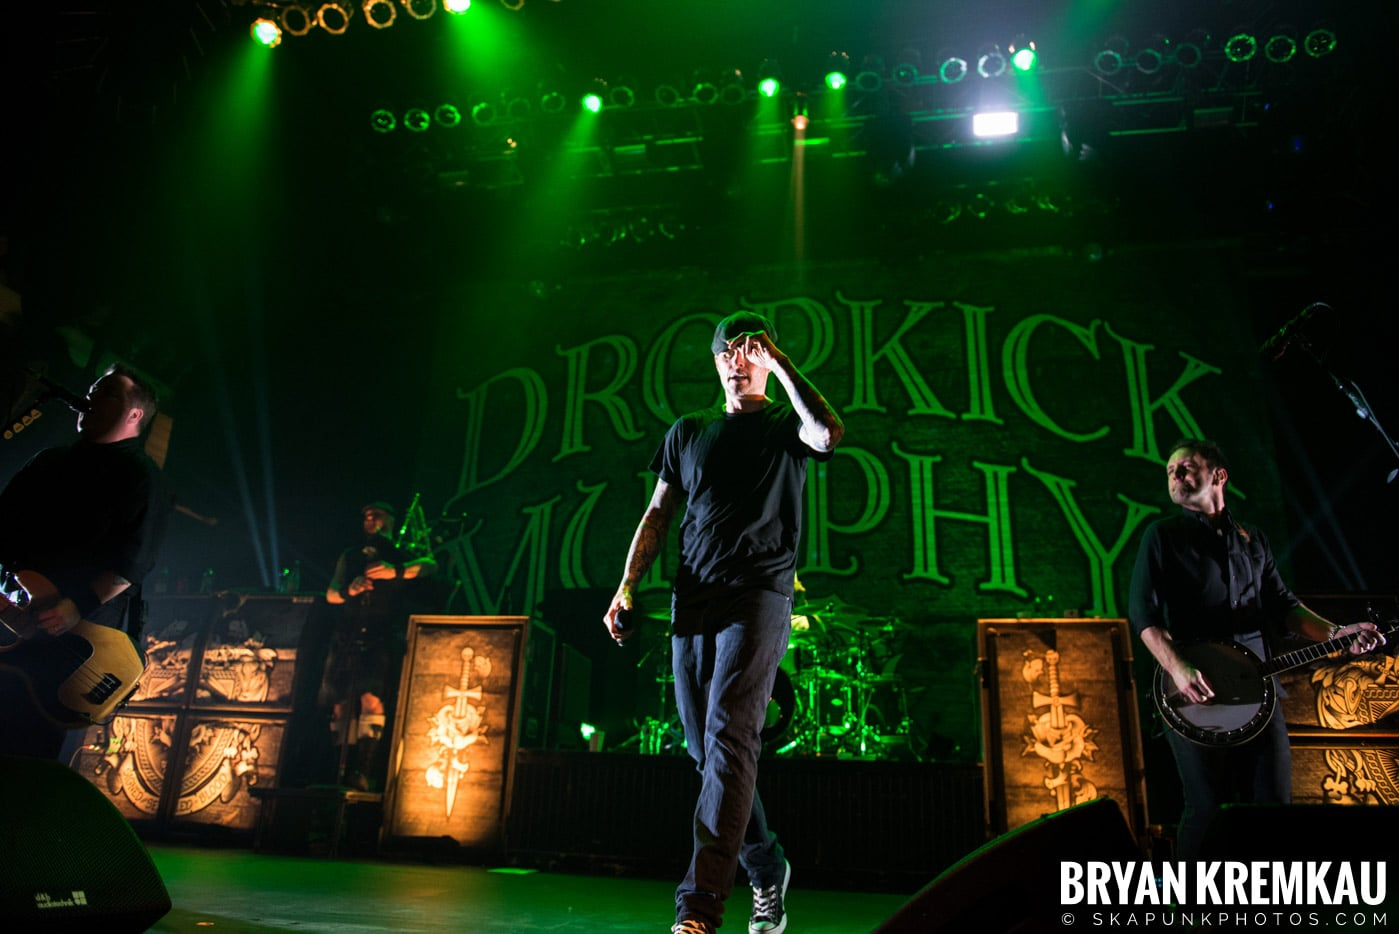 The Dropkick Murphys @ Terminal 5, NYC - 3.12.13 (29)